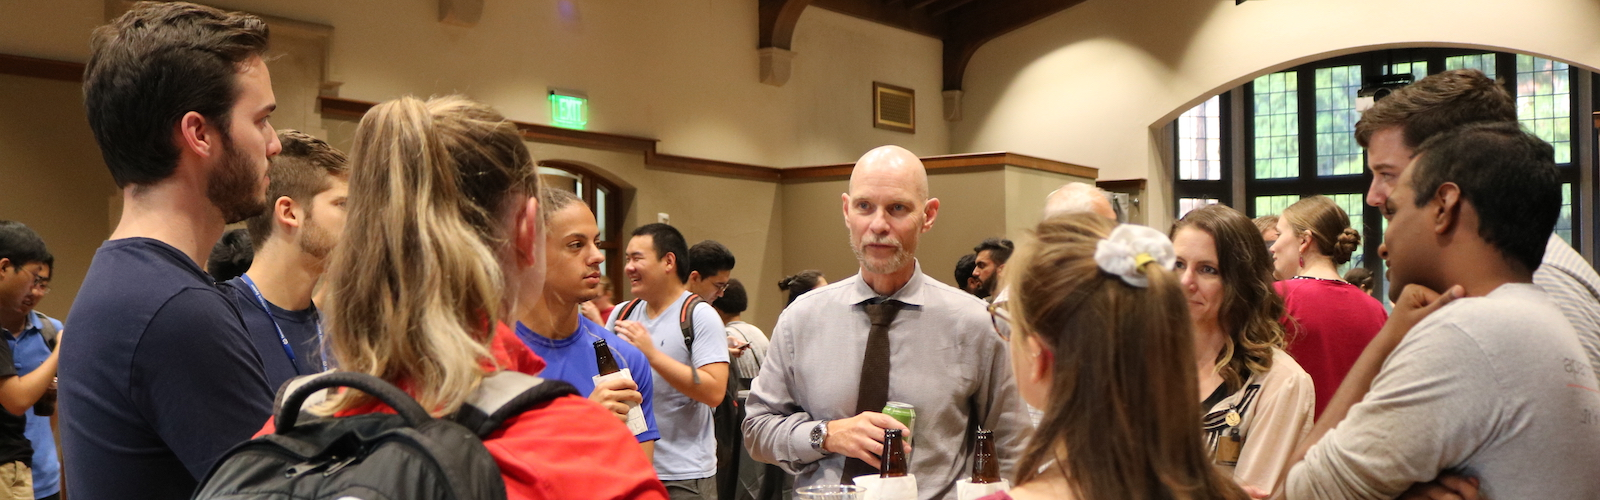 Dean Wallace meets with new Graduate School students at a welcome reception.